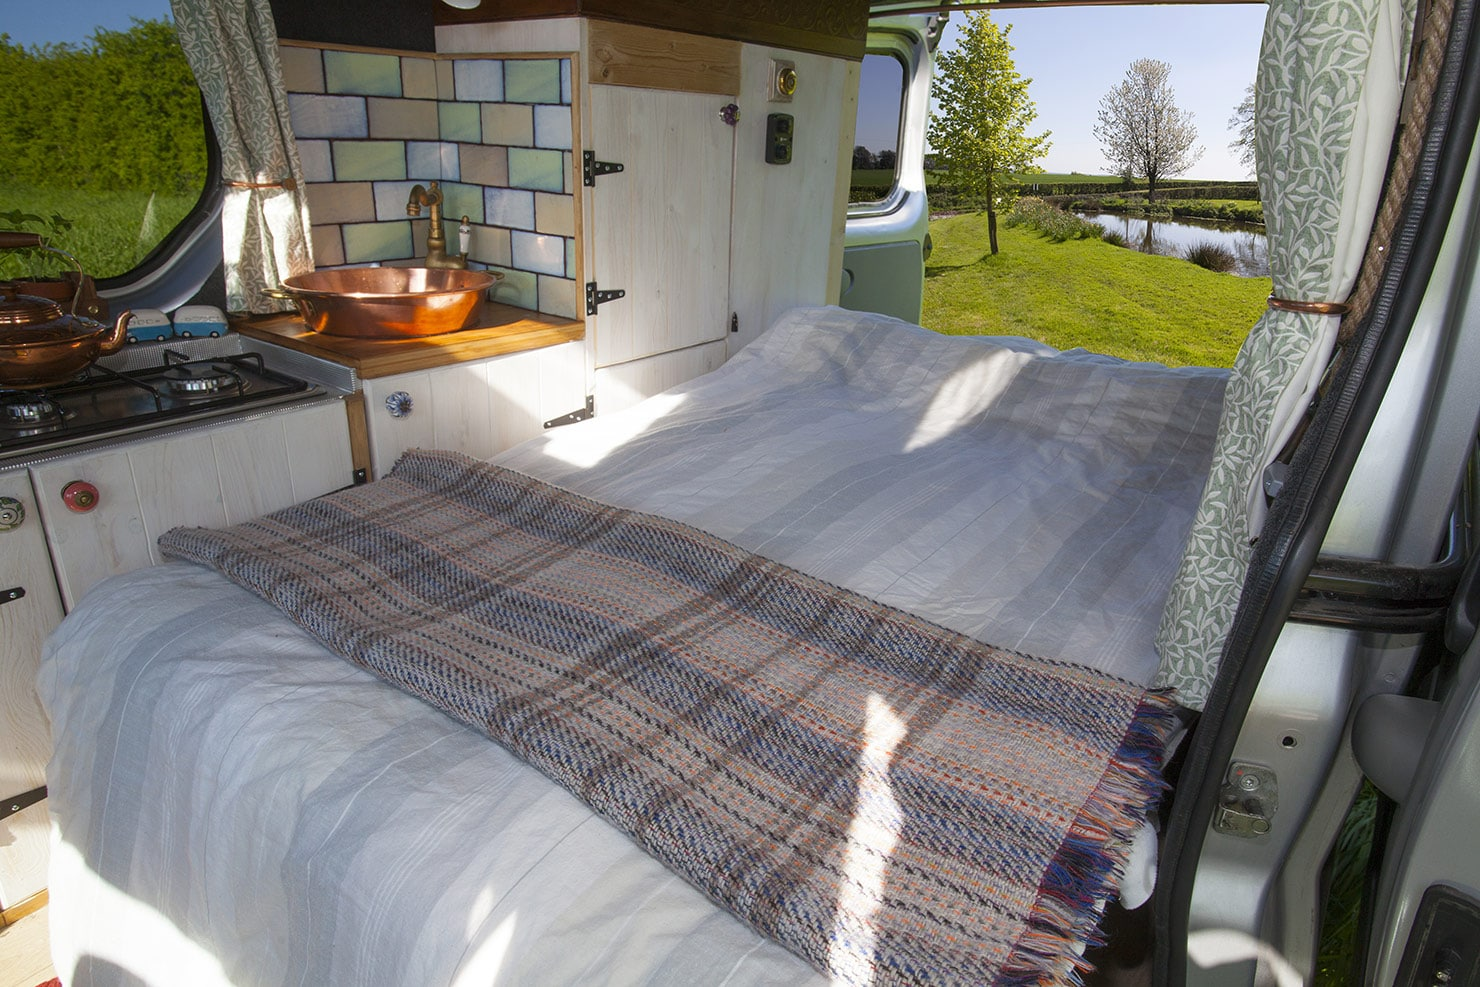 Easy to pull out, the bed gives plenty of room for two in this cosy campervan